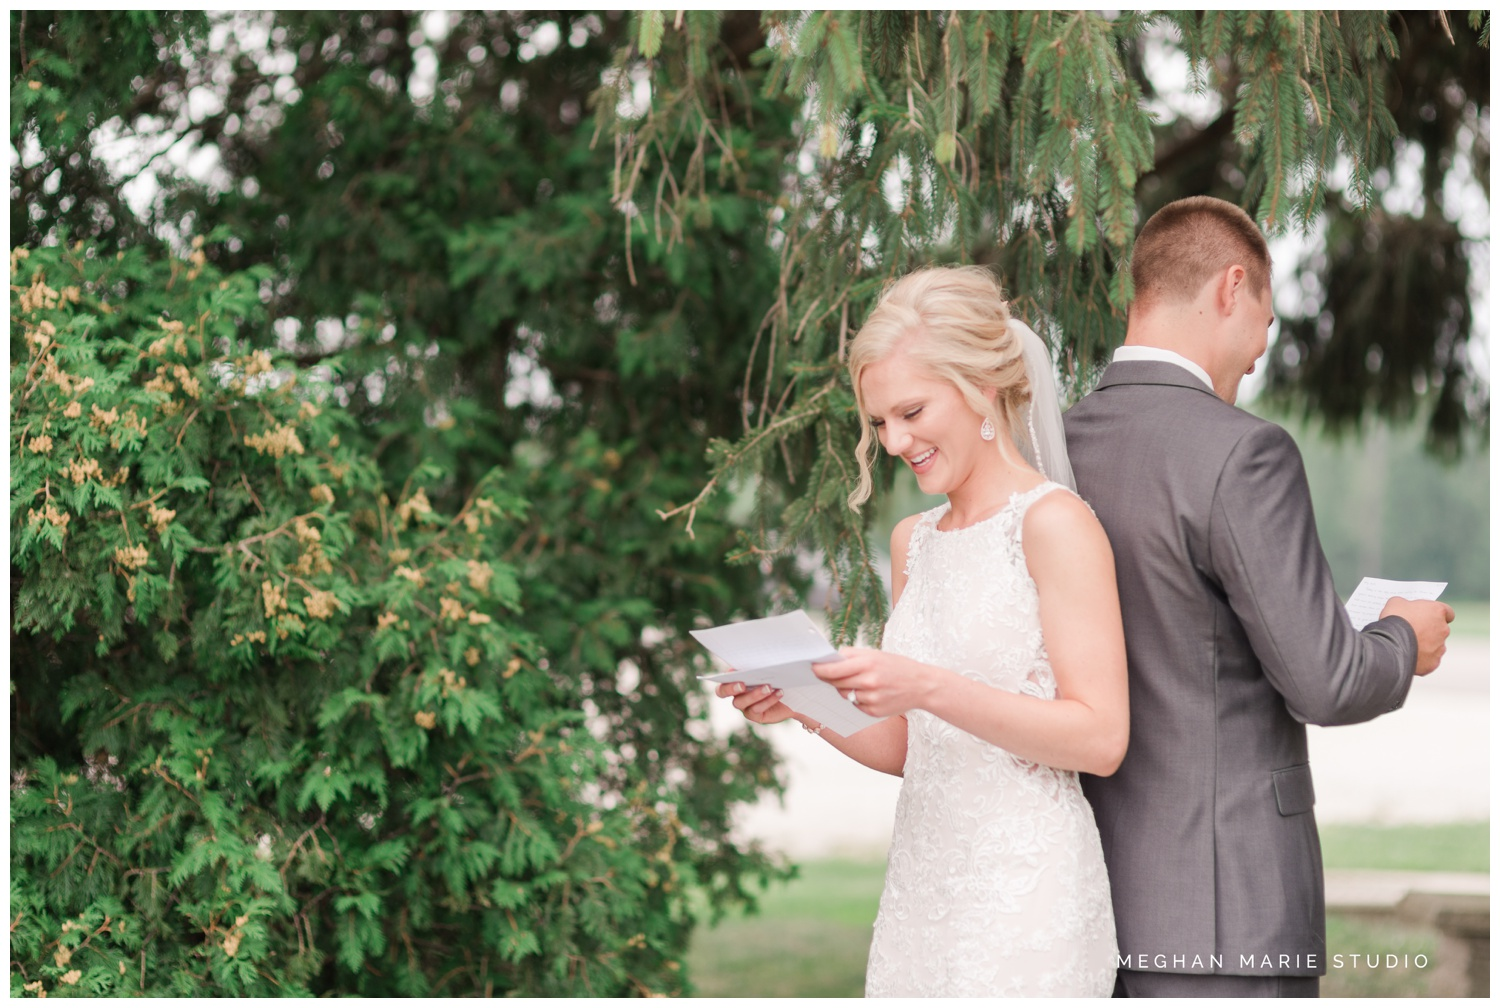 meghan marie studio wedding photographer ohio troy dayton columbus small town rustic rural farm cows vintage mauves dusty rose pinks whites ivorys grays f1 sound paper lanterns pearls_0614.jpg